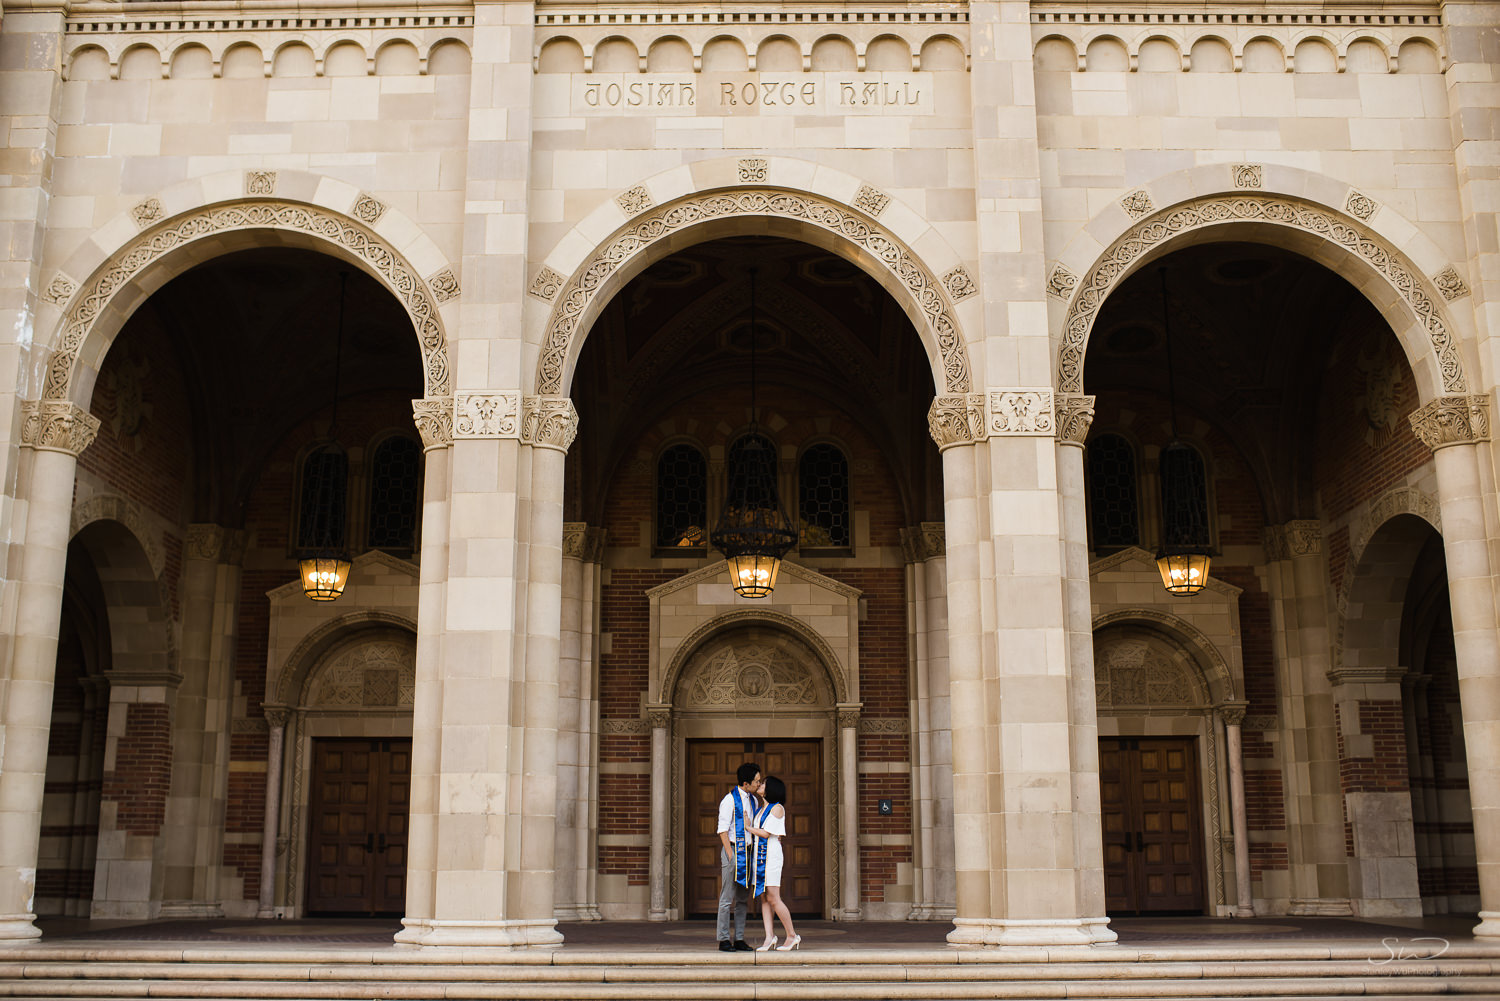 Copy of Copy of epic architectural portrait of couple standing under arches at royce hall | Stanley Wu Photography | Los Angeles | Graduation Portraits | UCLA, USC, LMU, Pepperdine, CSULA, CSUN, CSULB, UCI, UCSD